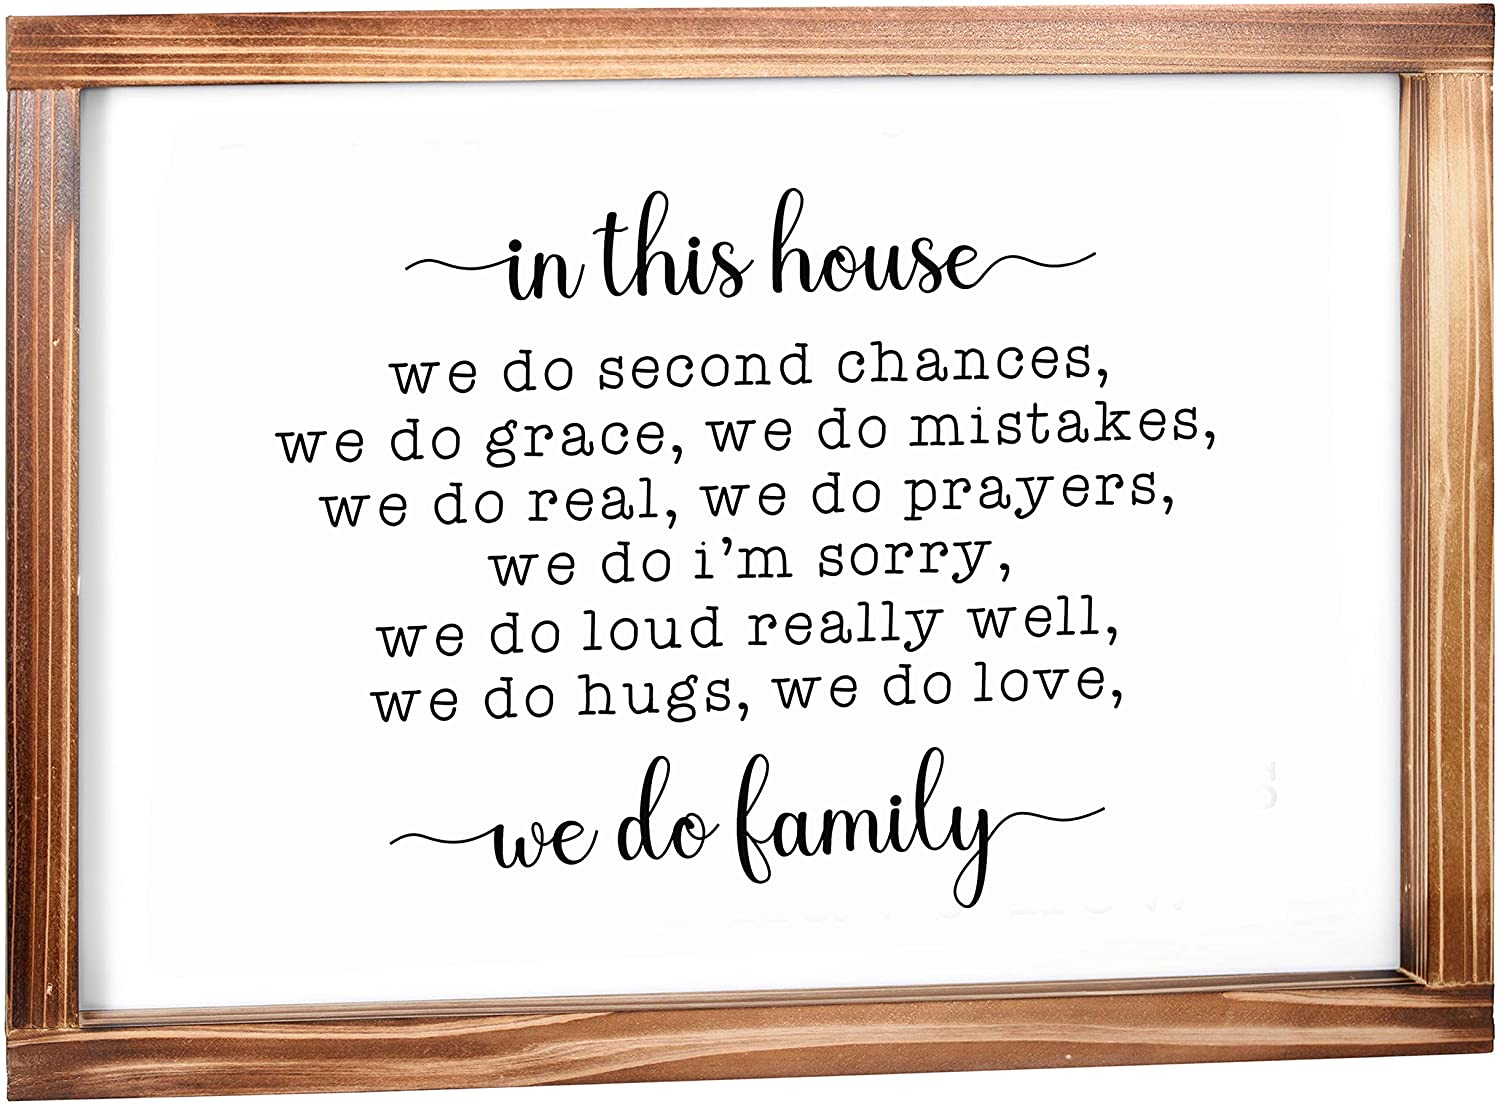 In This House We Do Family Sign - Family Signs for Home Decor, Rustic Farmhouse Decor for the Home Sign -Wall Decorations for Living Room, Modern Farmhouse Sign with Solid Wood Frame -11 x 16 Inches